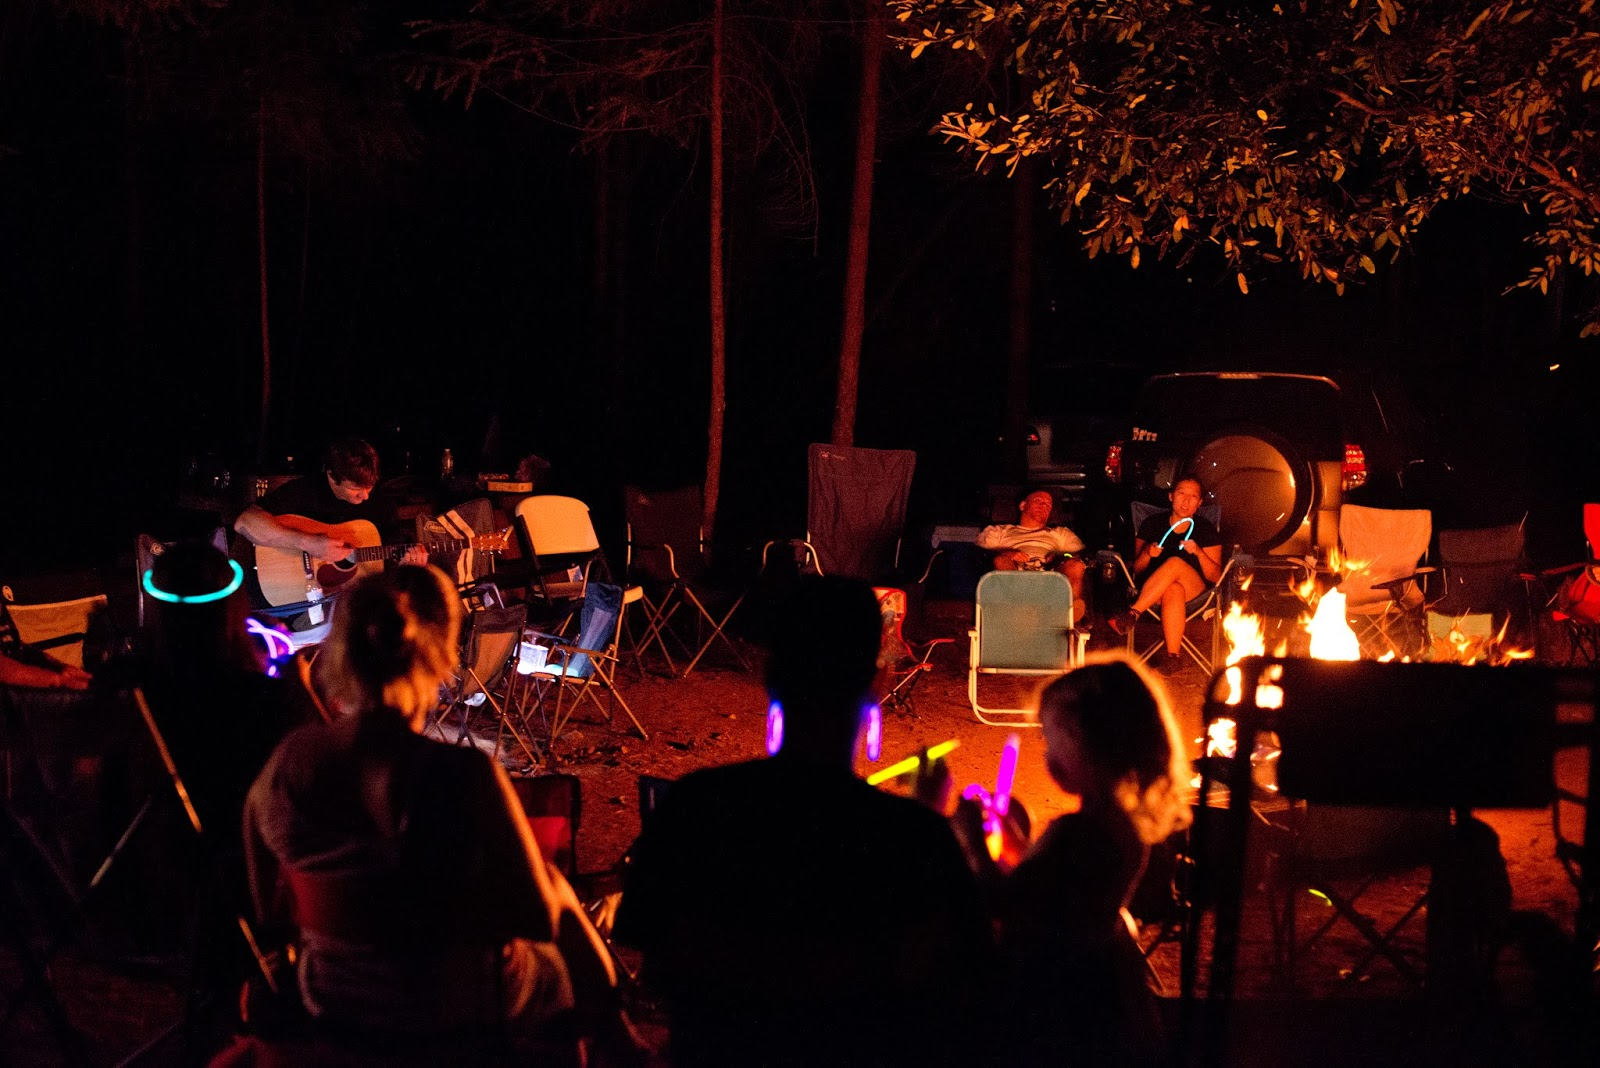 Each Night We Ended Our Day At The Campfire With A Little Devotional And Then Brent Lead Us In Some Songs